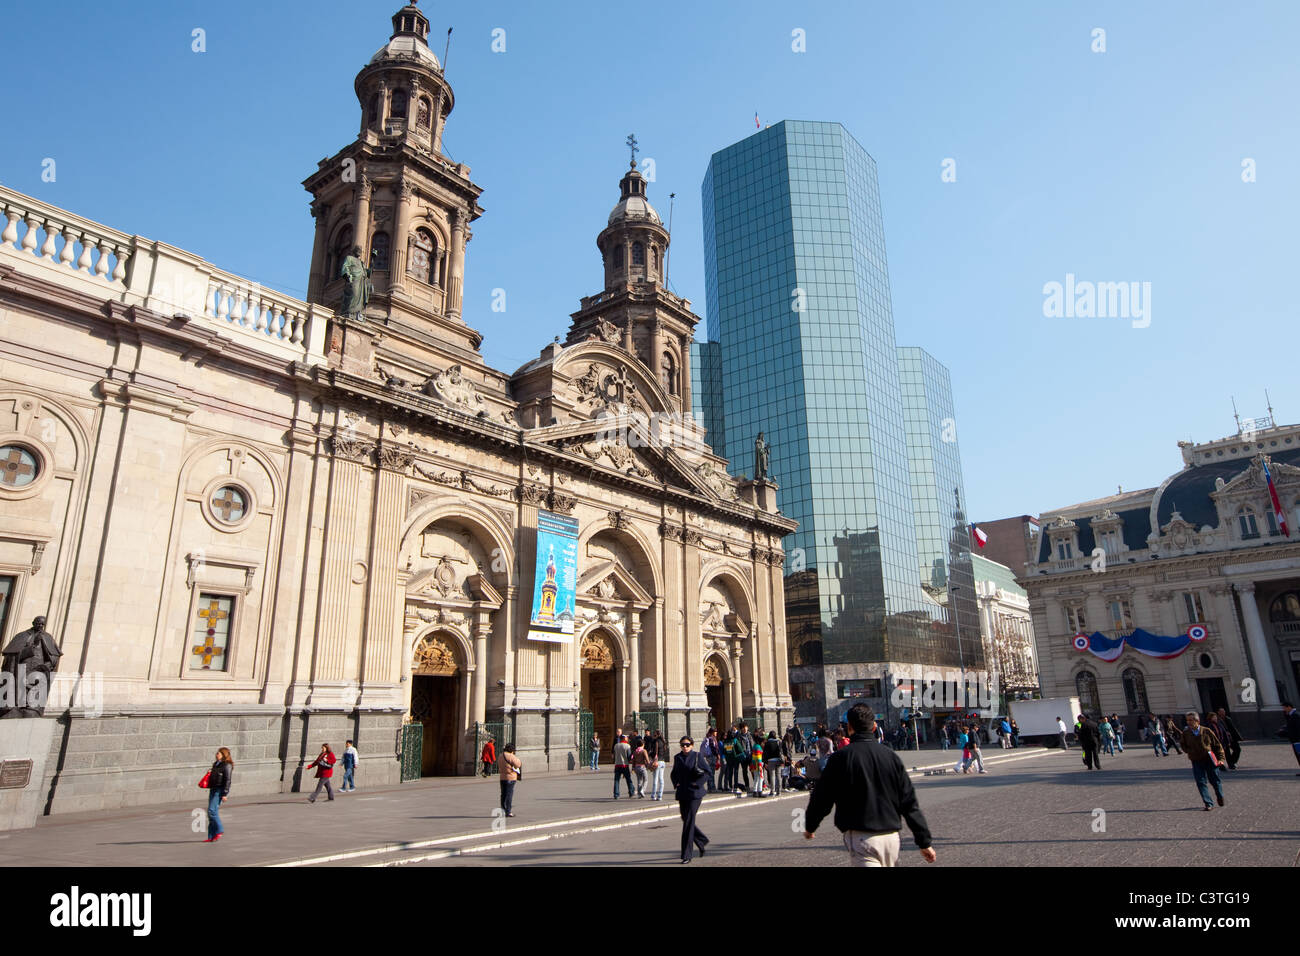 The Cathedral of Santiago de Chile - Stock Image